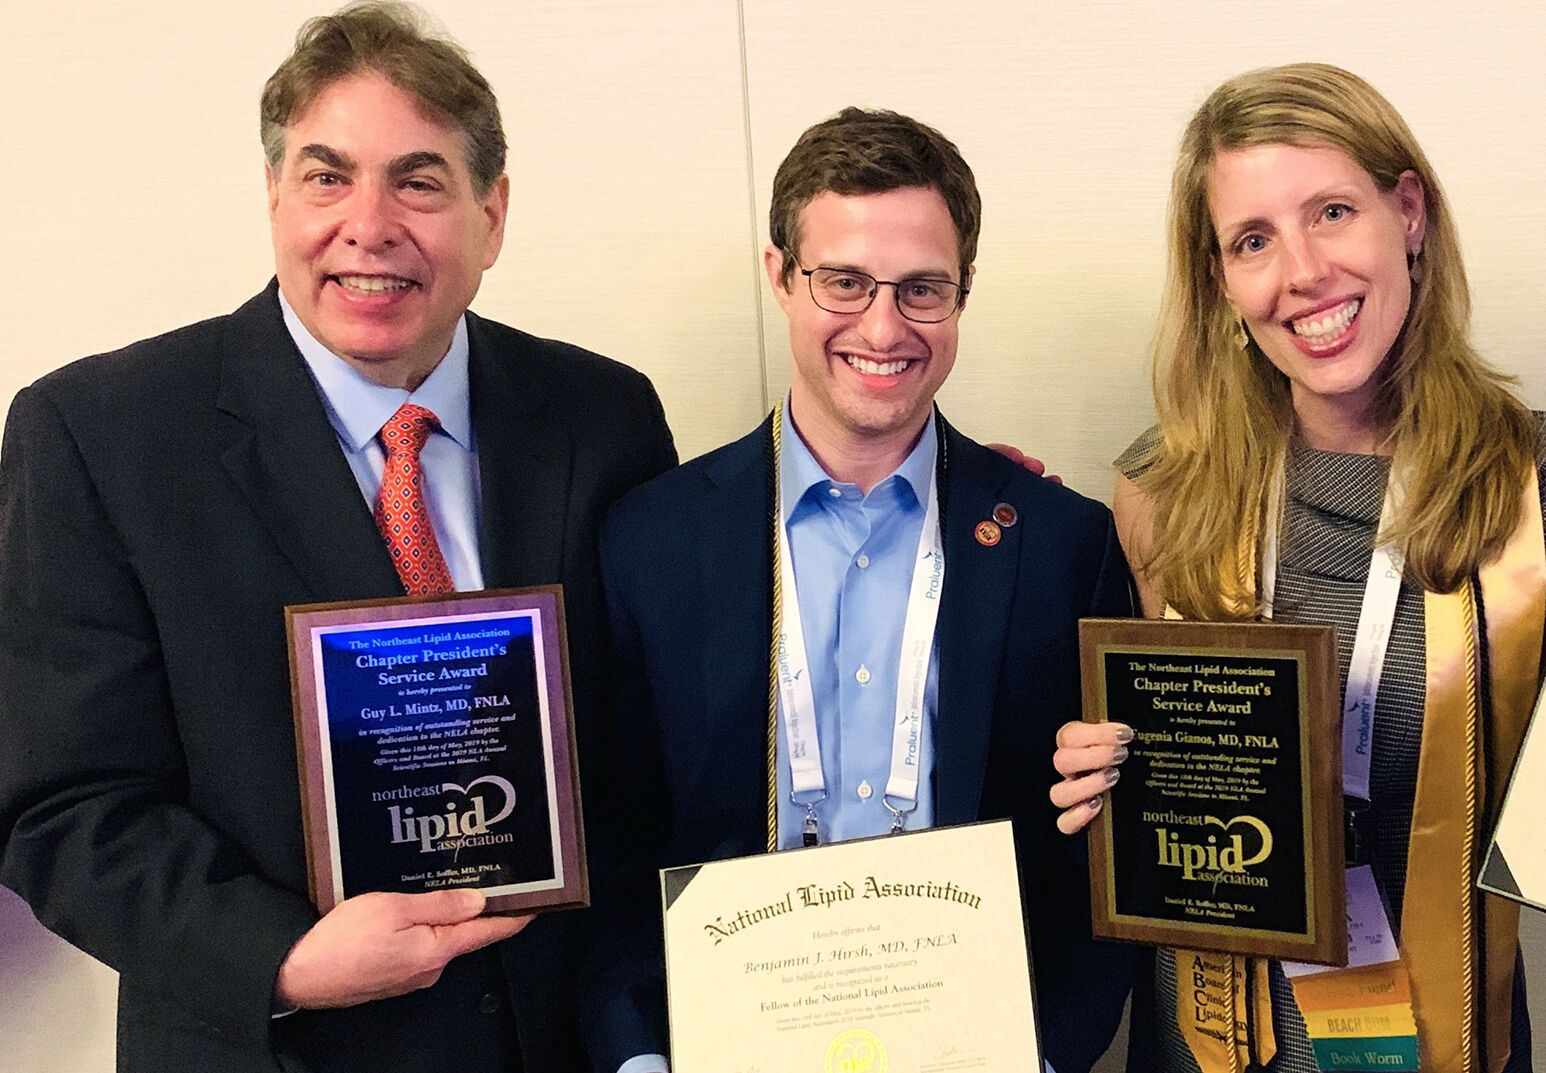 From left: Dr. Guy Mintz, Dr. Benjamin Hirsh and Dr. Eugenia Gianos received top honors from the National Lipid Association during the group's annual scientific sessions held in Miami.